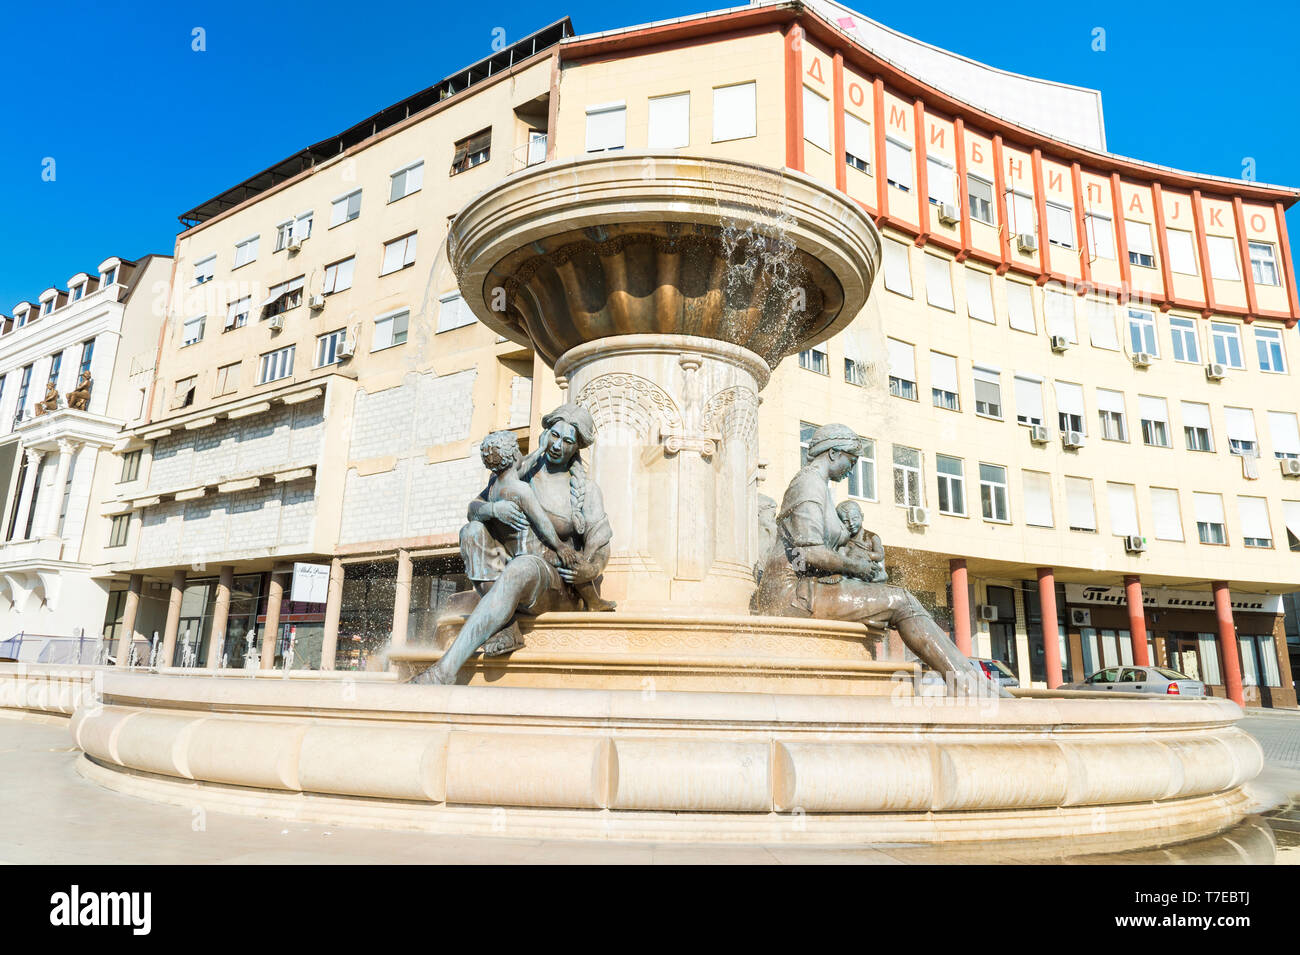 Olympias Monument and fountain, Skopje, Macedonia - Stock Image